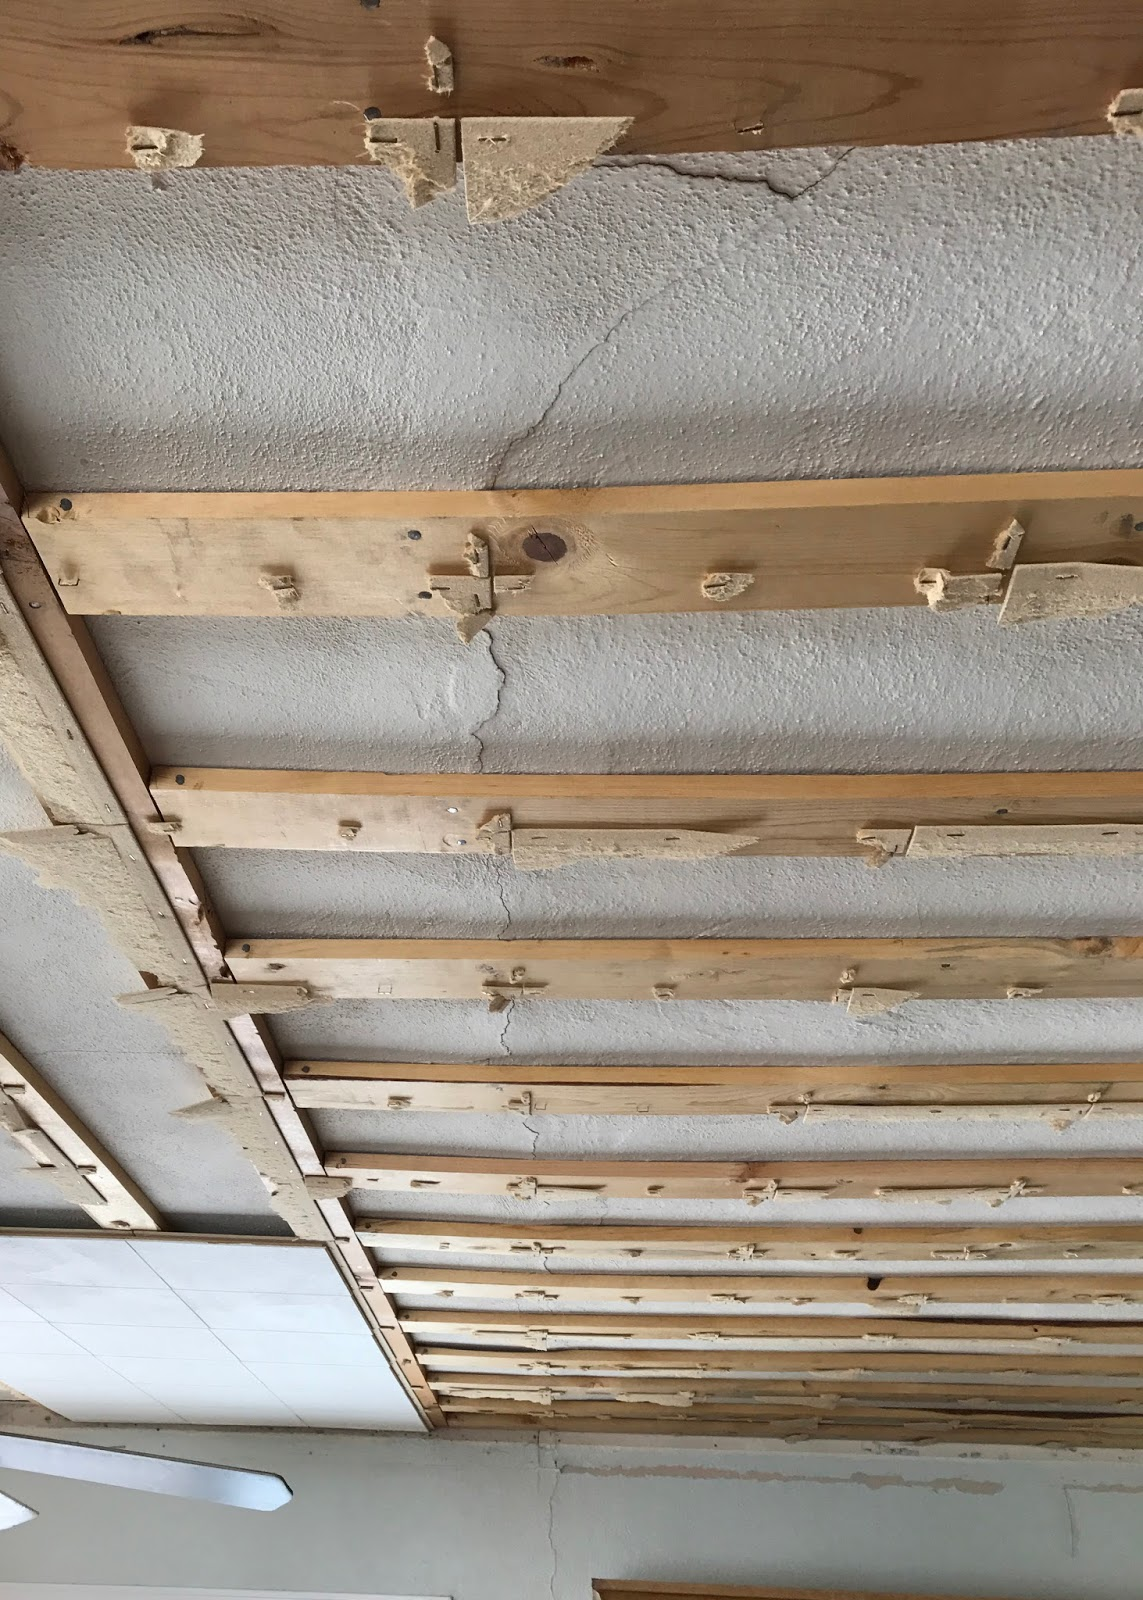 Farmhouse ceiling removing ceiling tiles averie lane farmhouse ceiling removing ceiling tiles dailygadgetfo Choice Image